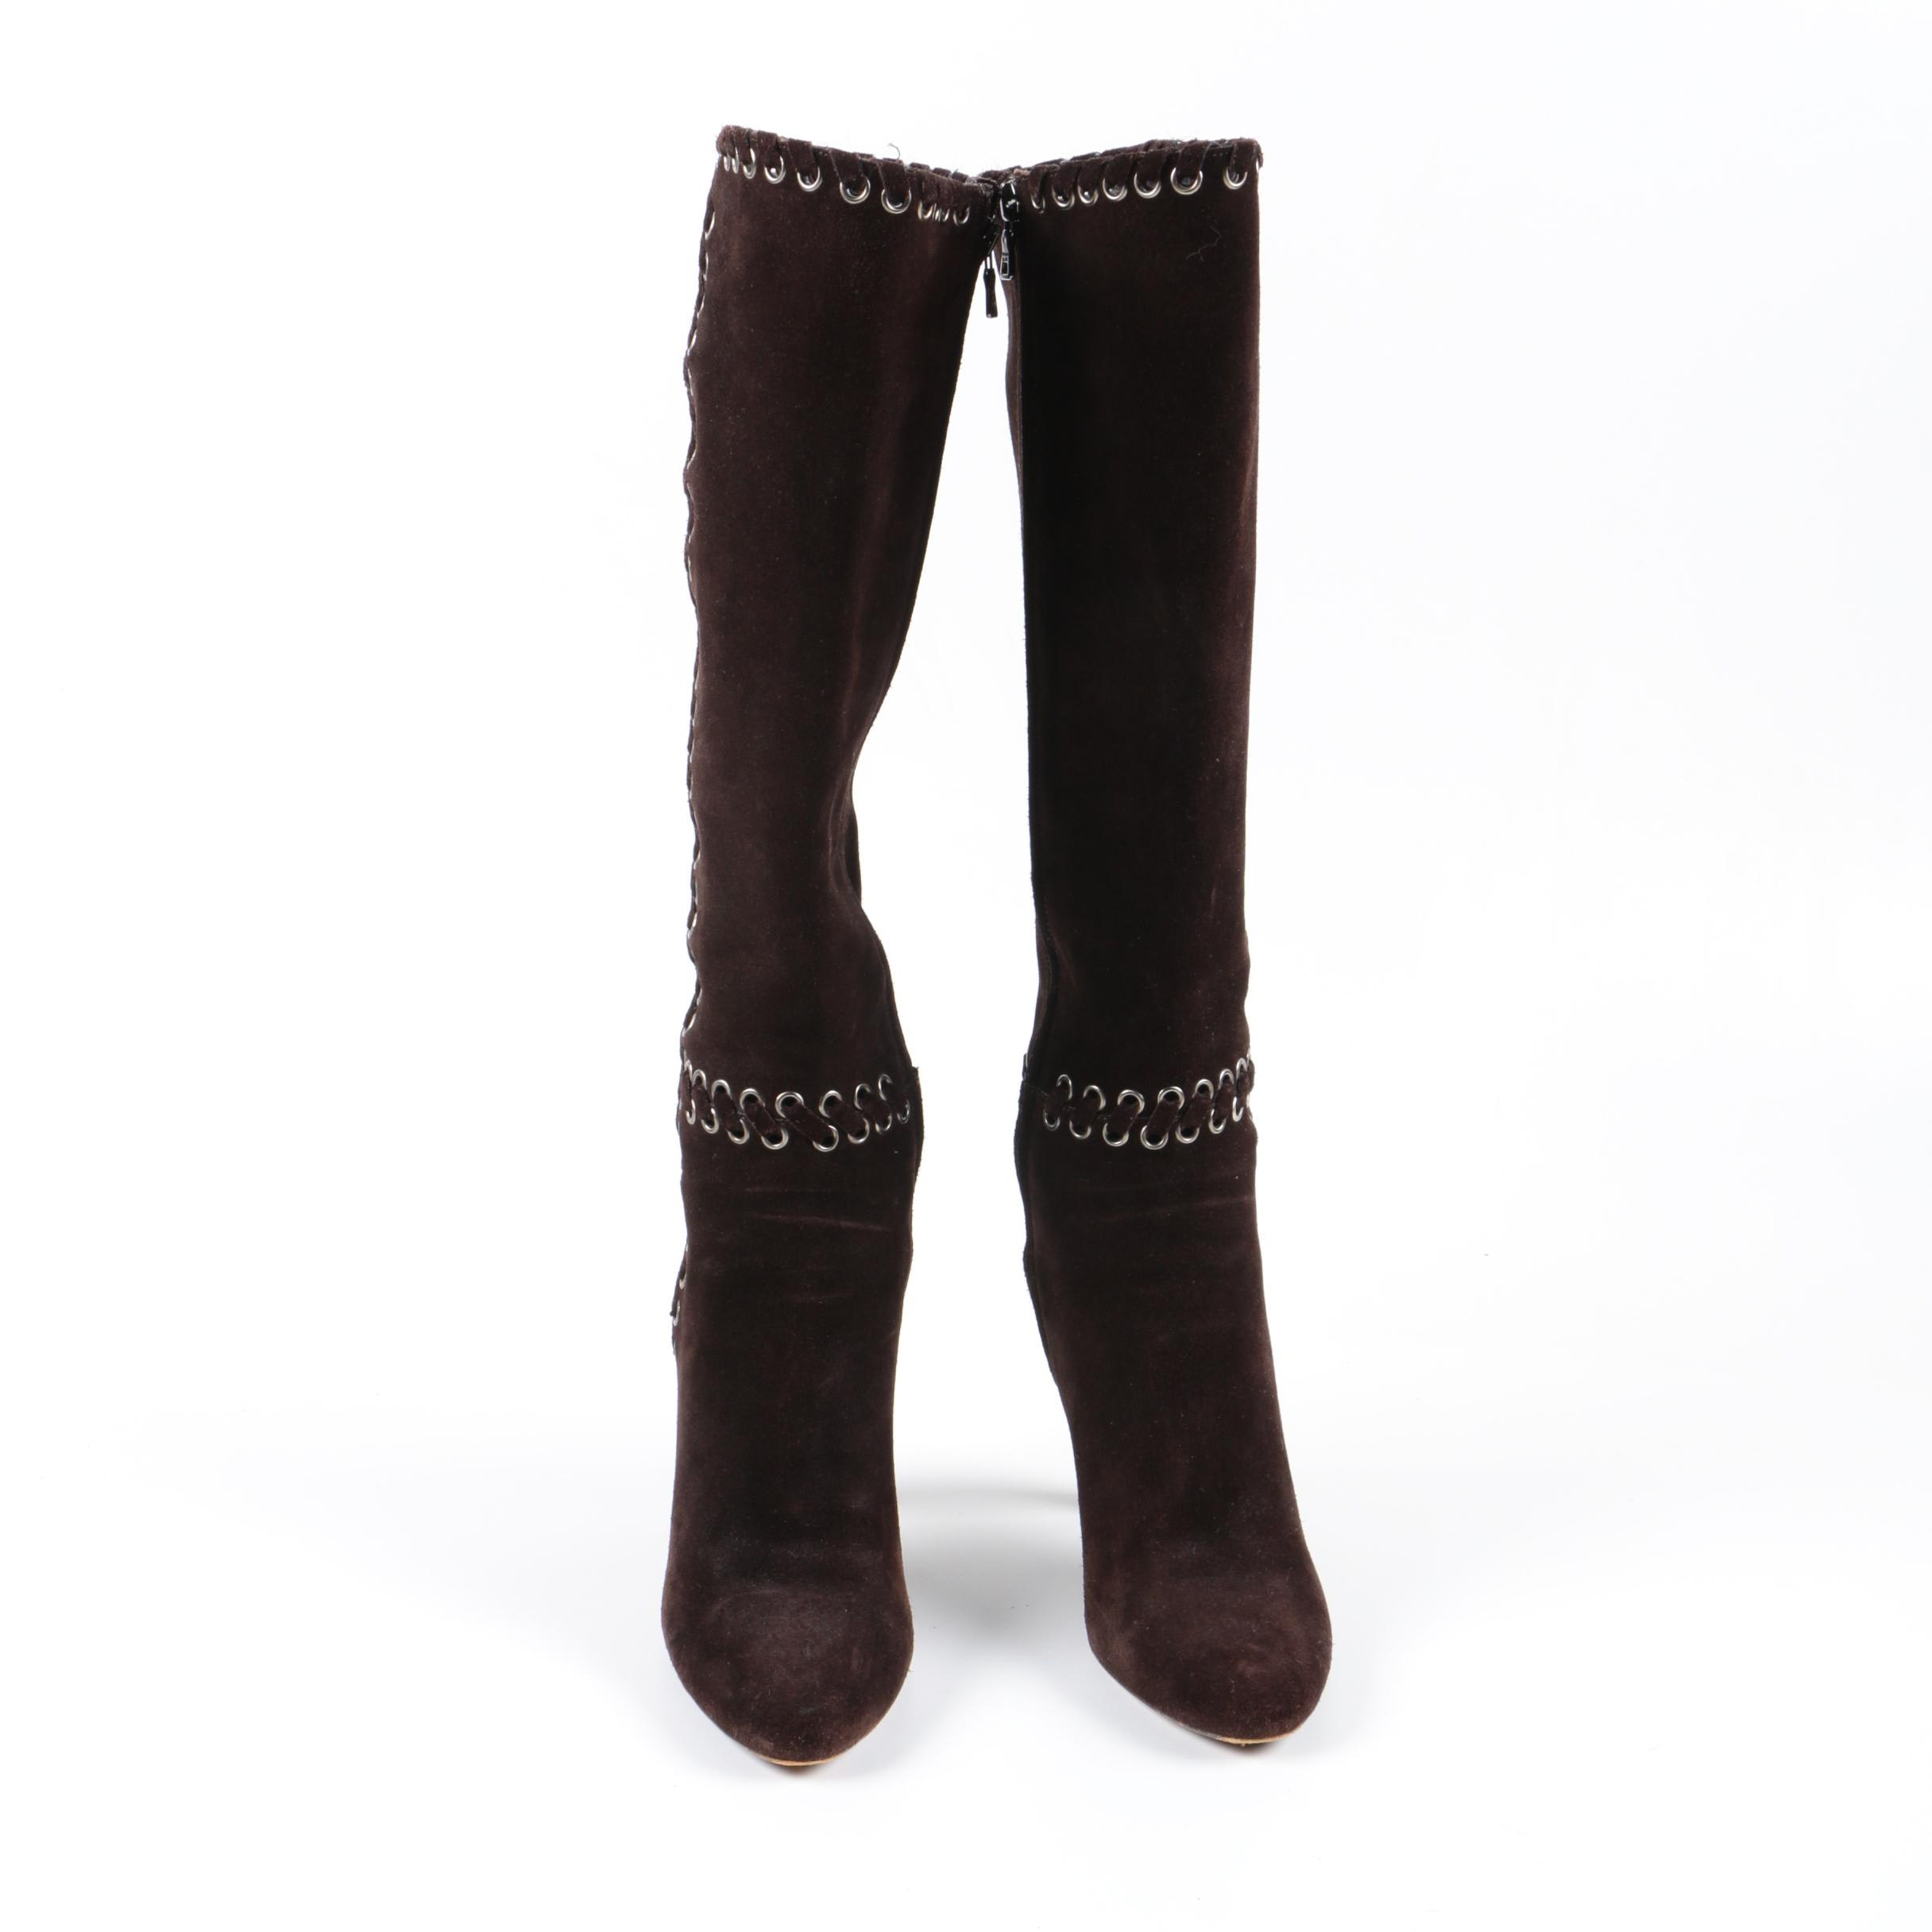 Prada Brown Suede High Heel Boots